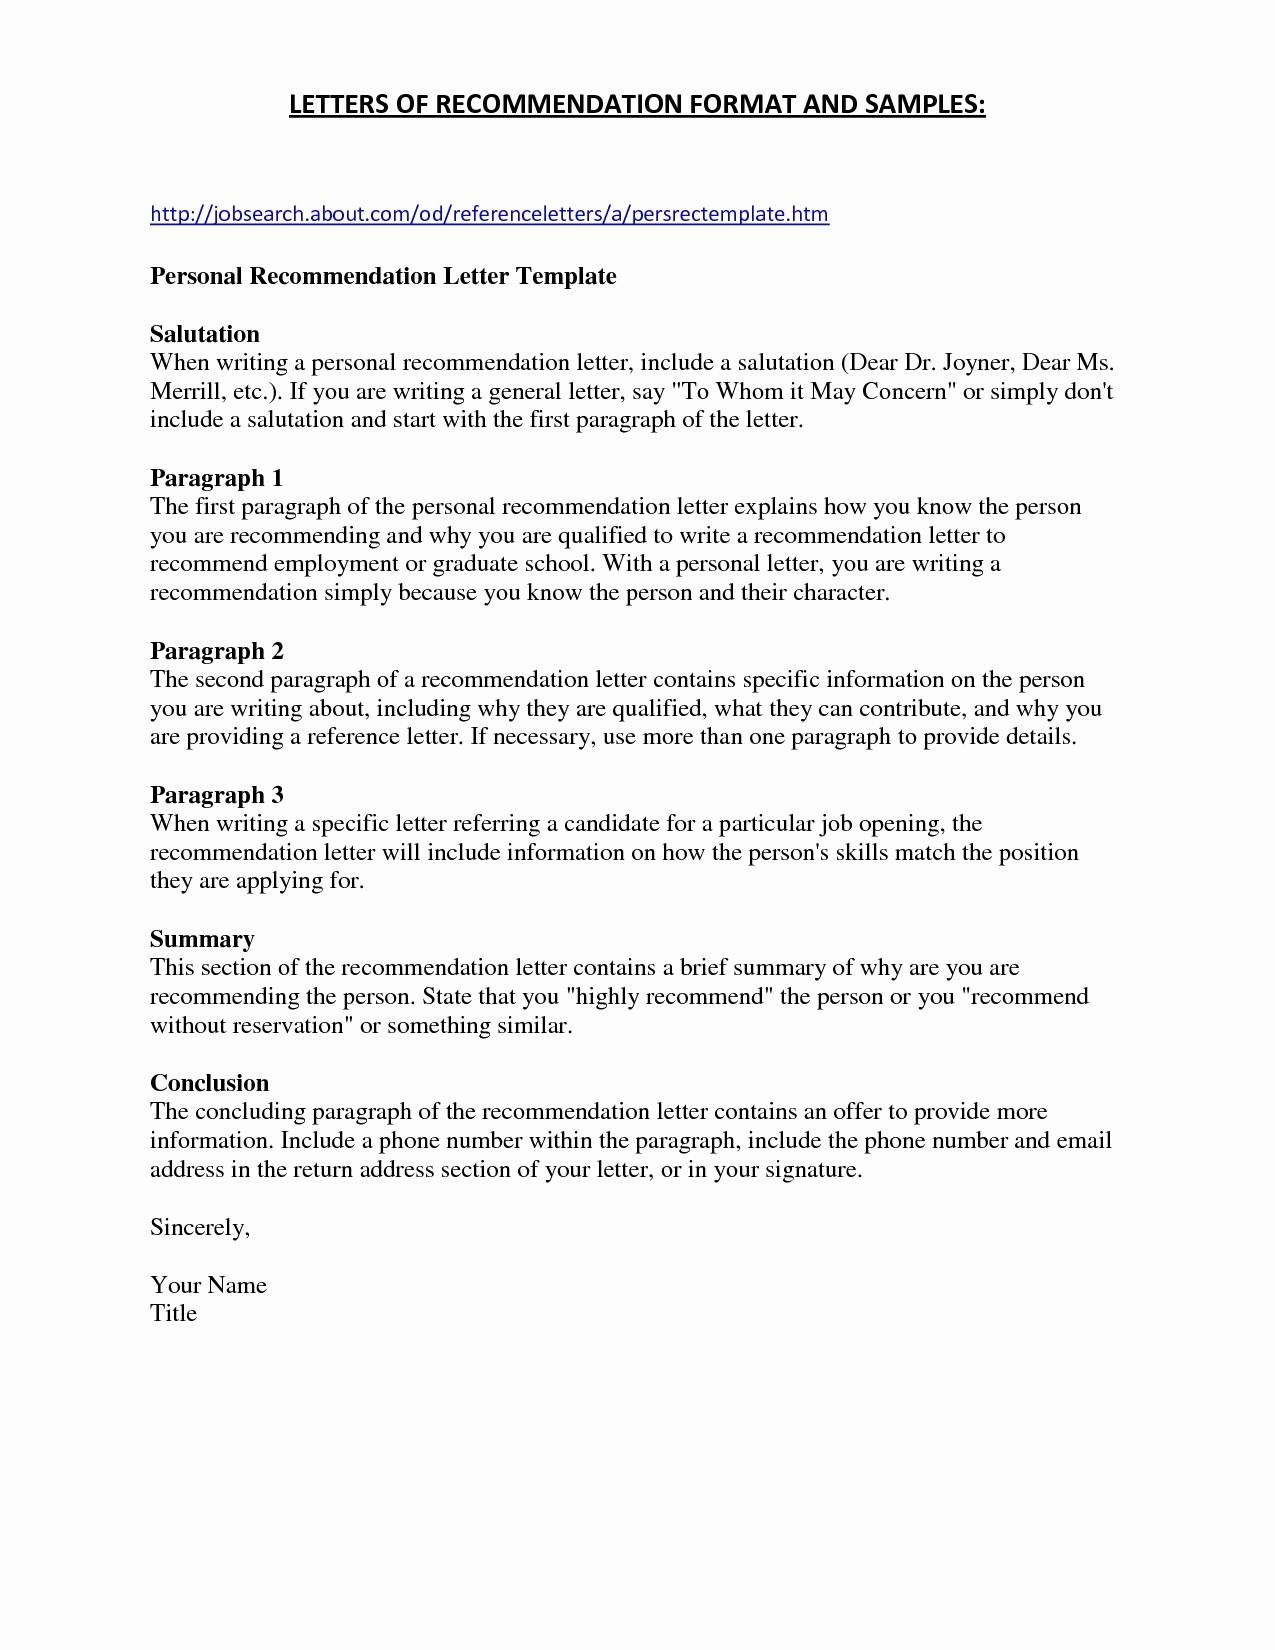 Graduate School Cover Letter Template - Cover Letter Template for Graduate Job Best Letter Intent Template